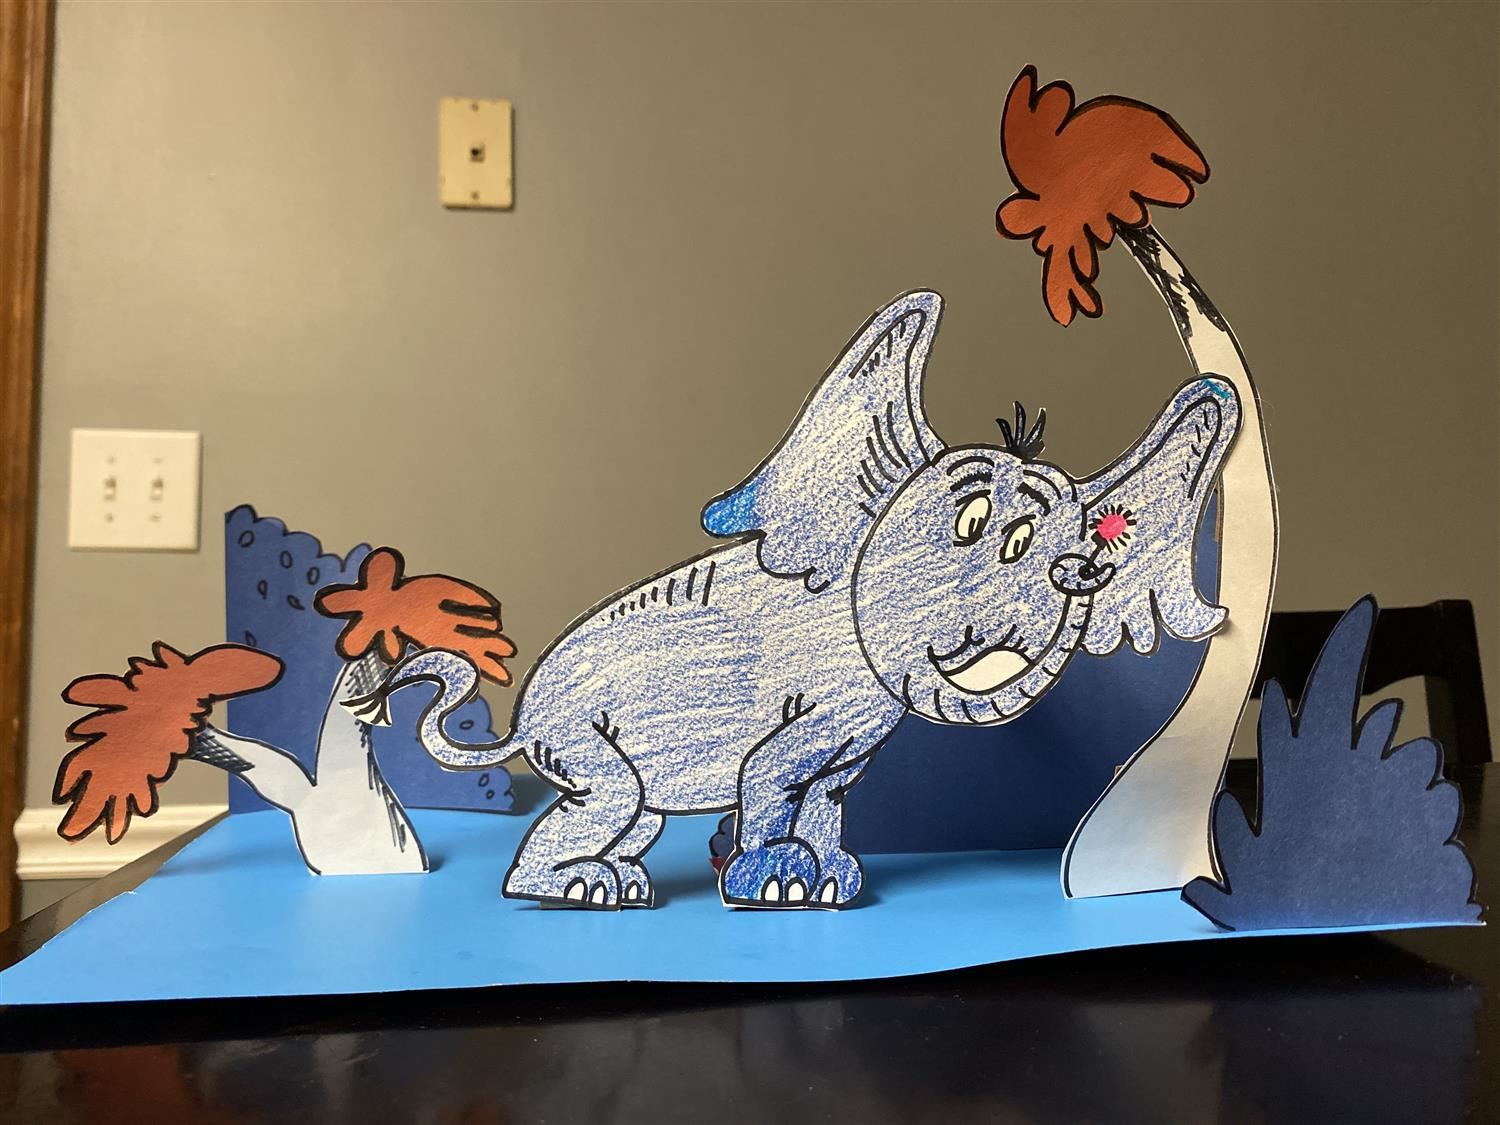 Students at Virtual Academy Create Art Inspired by Dr. Seuss